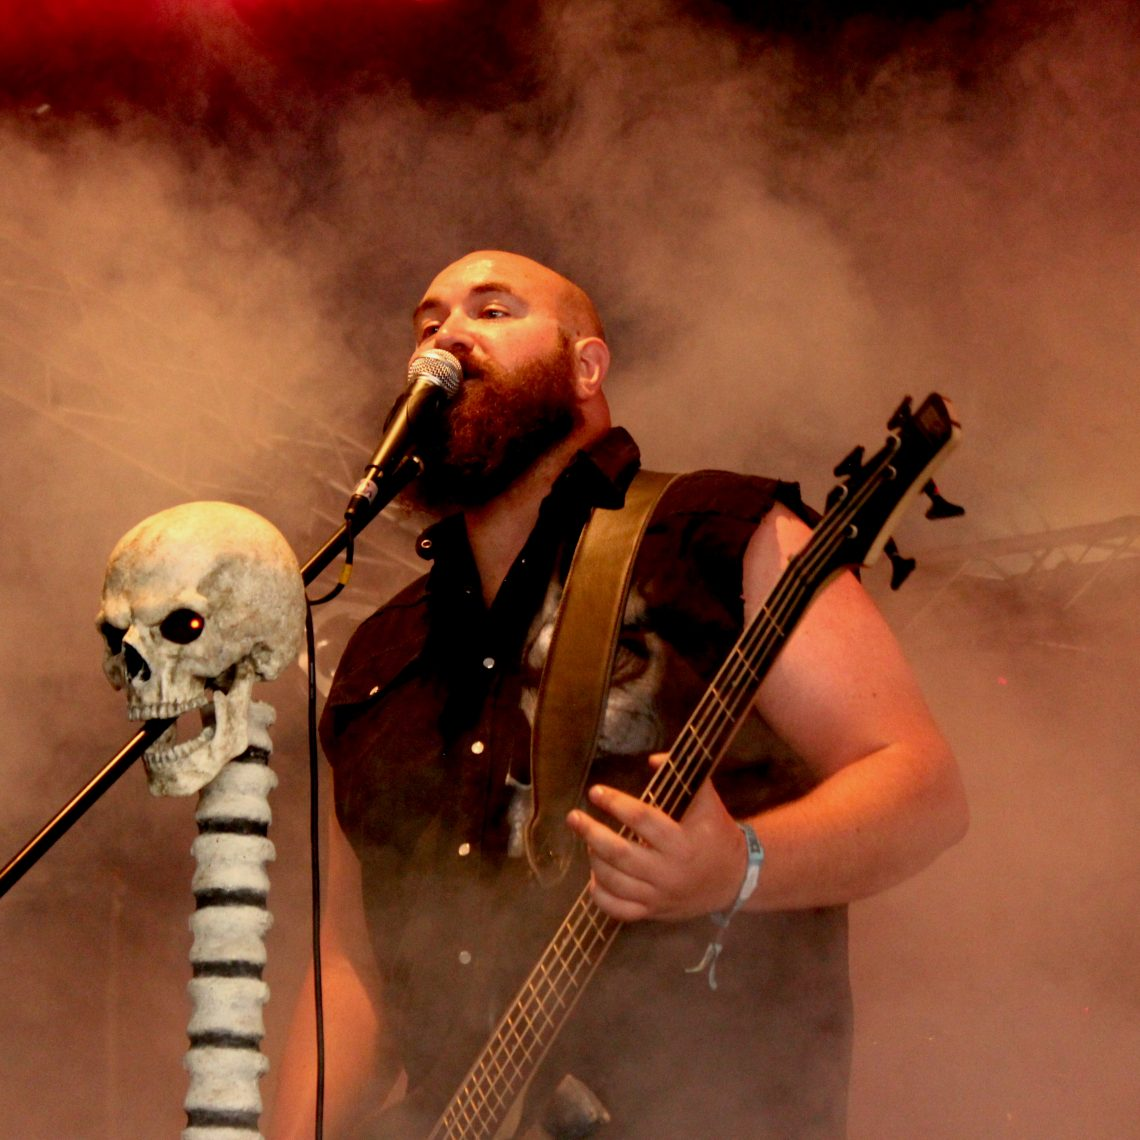 Interview With James Bryan Of 13 (Bloodstock 2018)